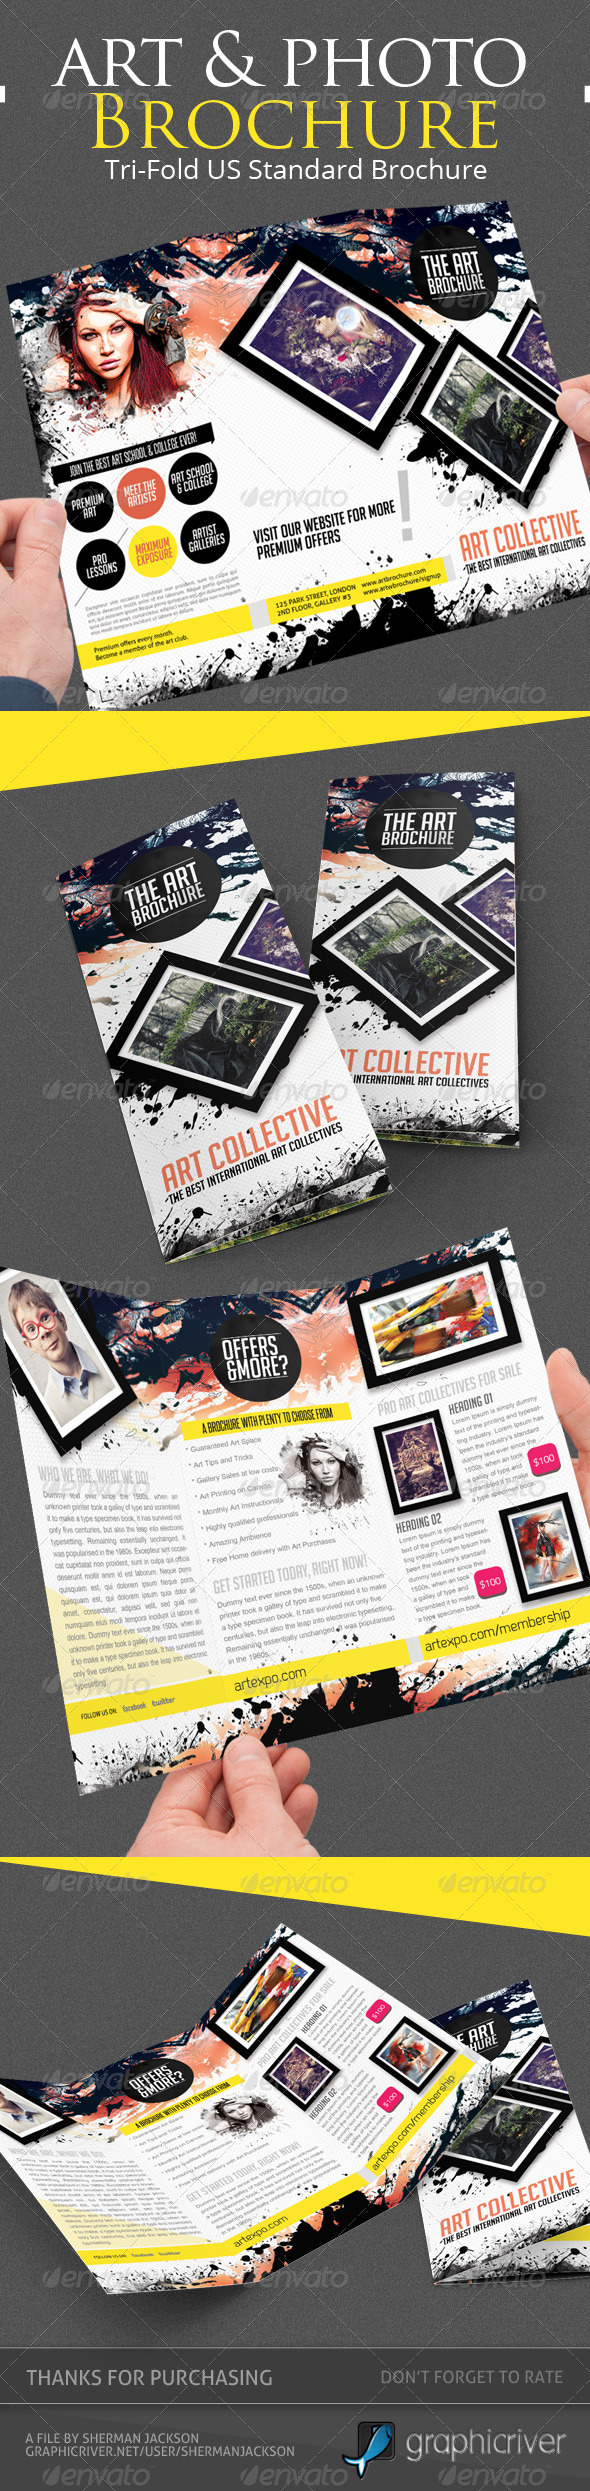 Art & Photo Tri-fold Brochure Template - Corporate Brochures